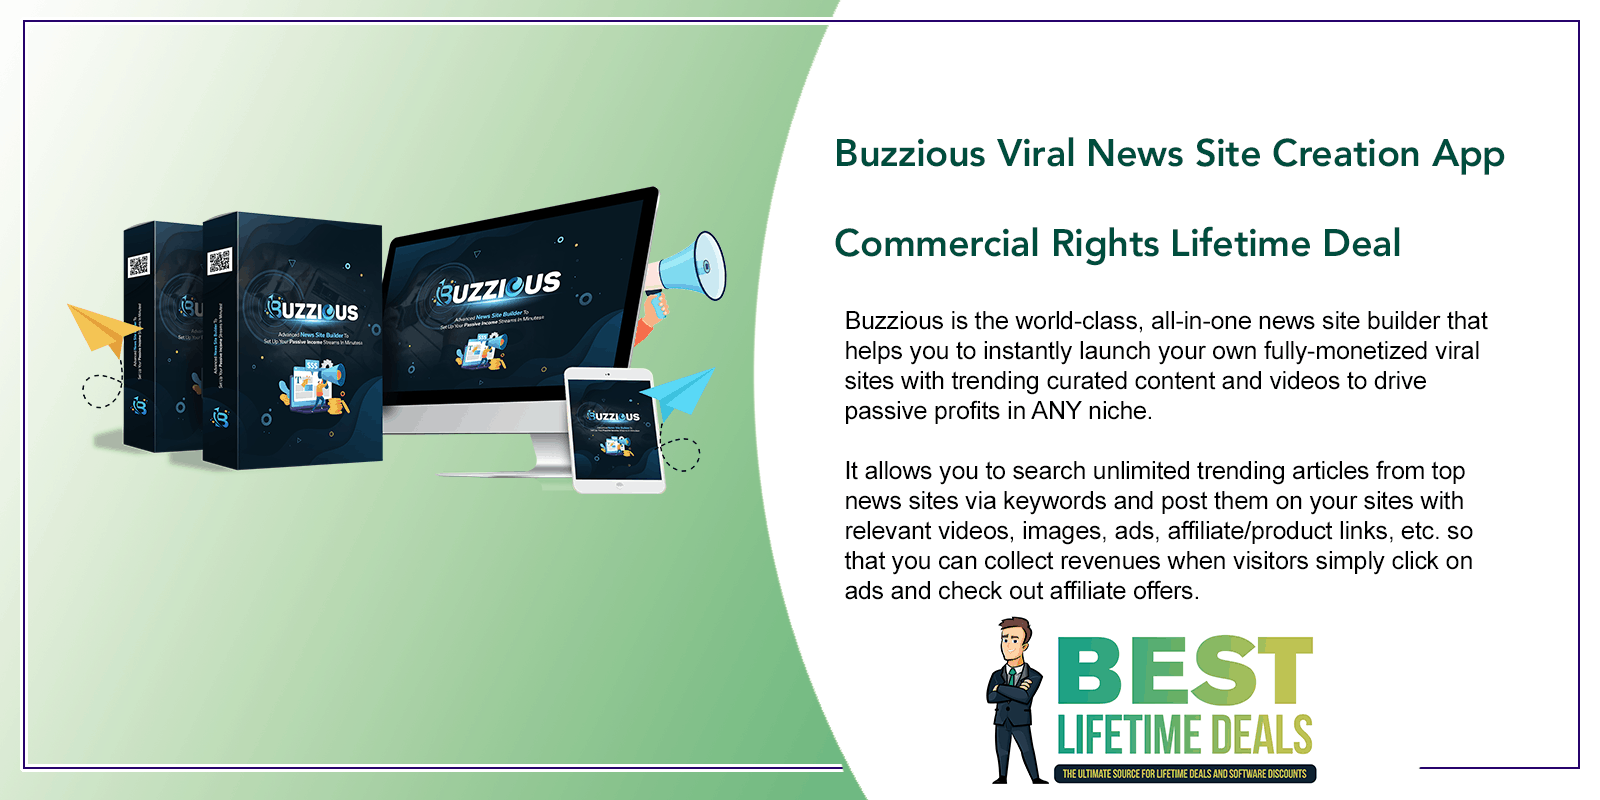 Buzzious Viral News Site Creation App Featured Image